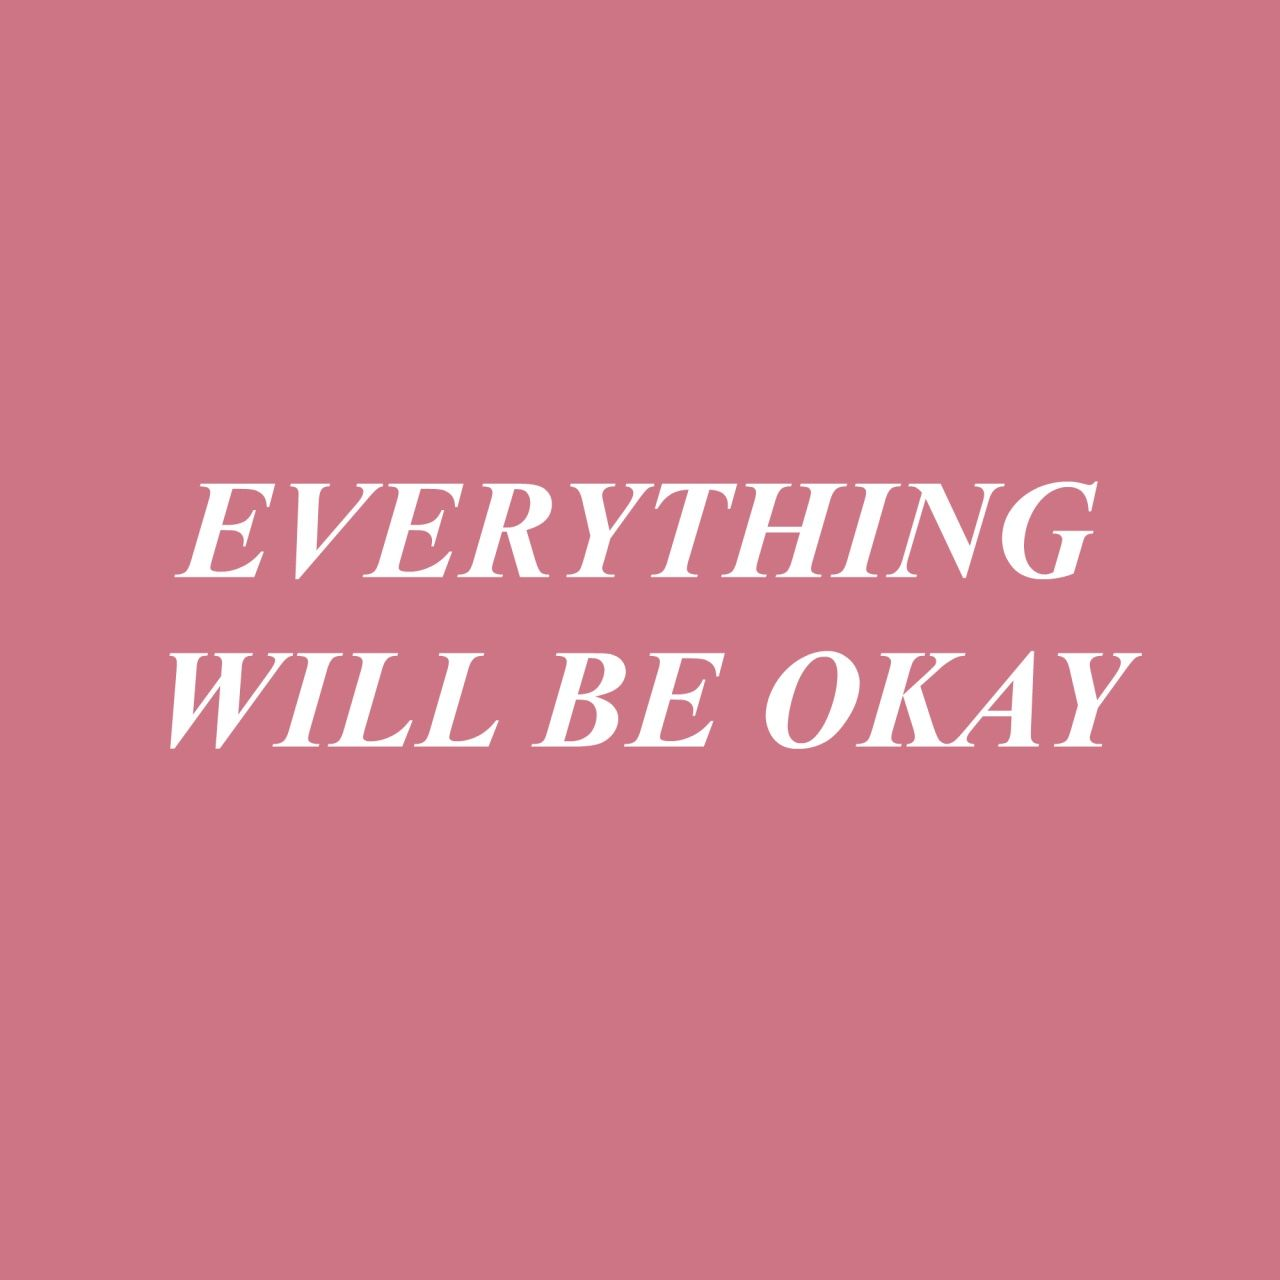 Inspiration Love Quotes The Personal Quotes Lovequotes Quotes Inspiration